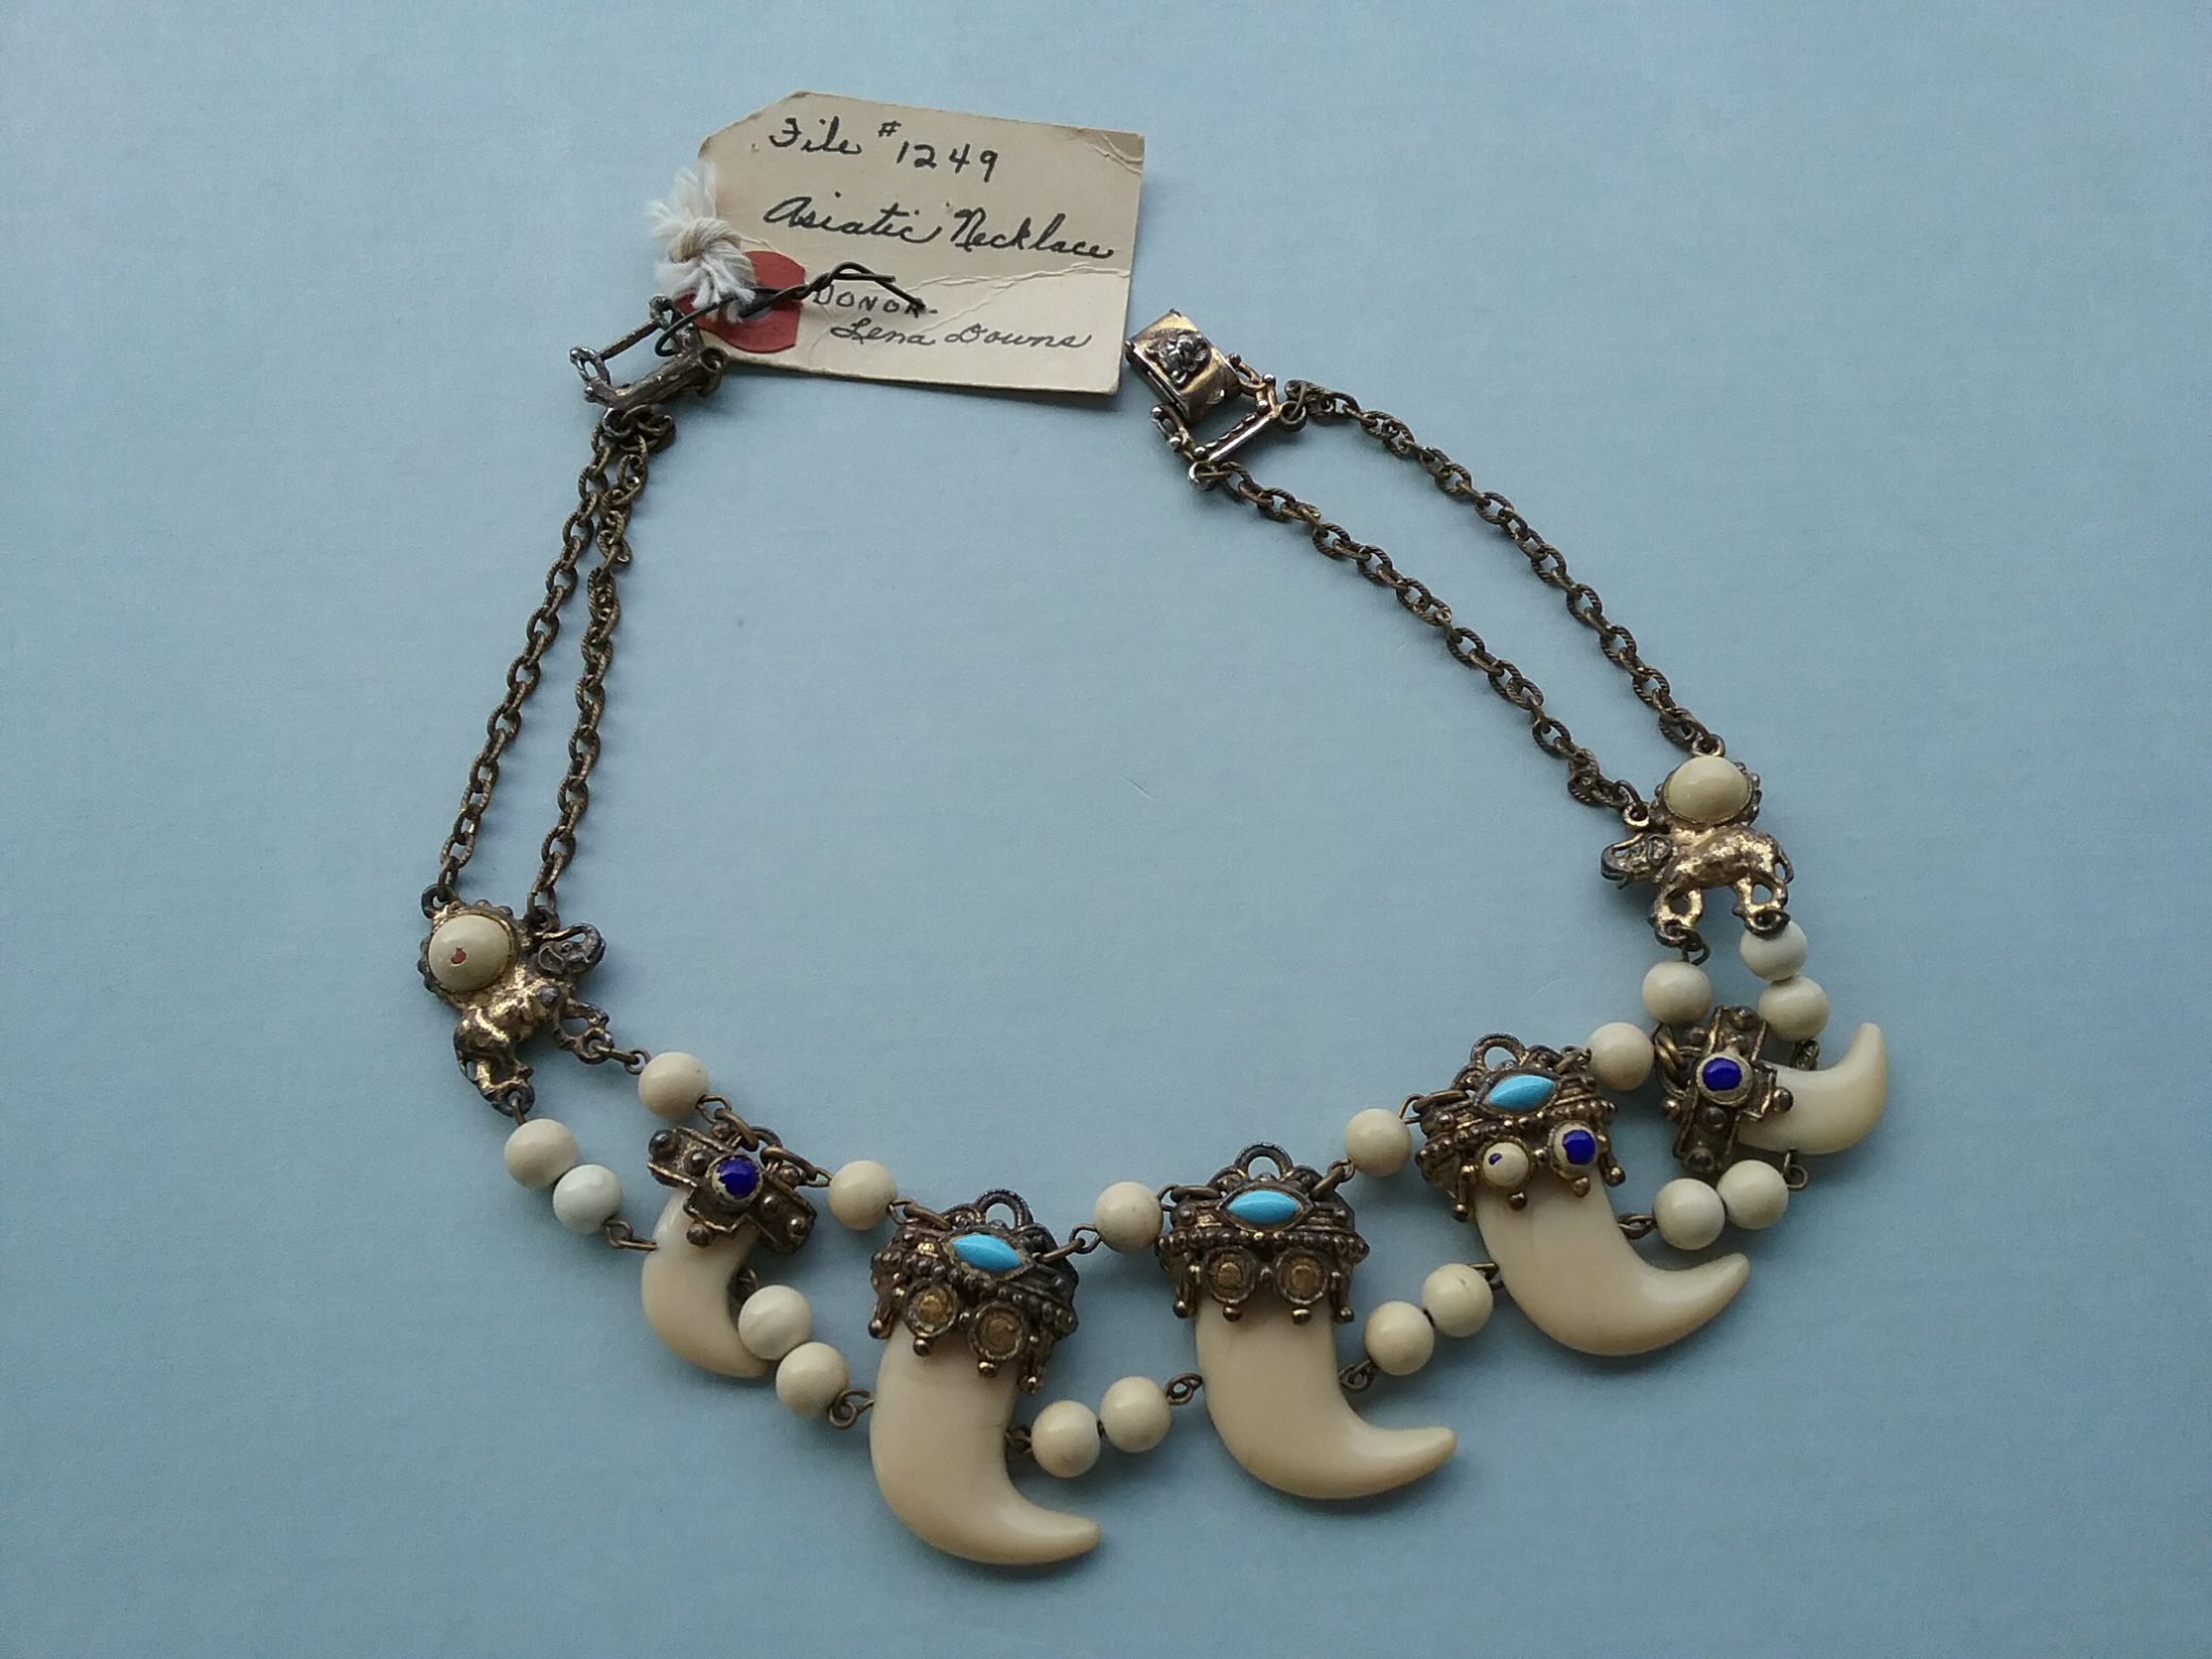 "Asiatic Necklace: This necklace featuring claws and beads is labeled as ""Asiatic,"" though the actual origin is unknown. Donated by Lena Downs. MCHS collections, #1960.3.1."